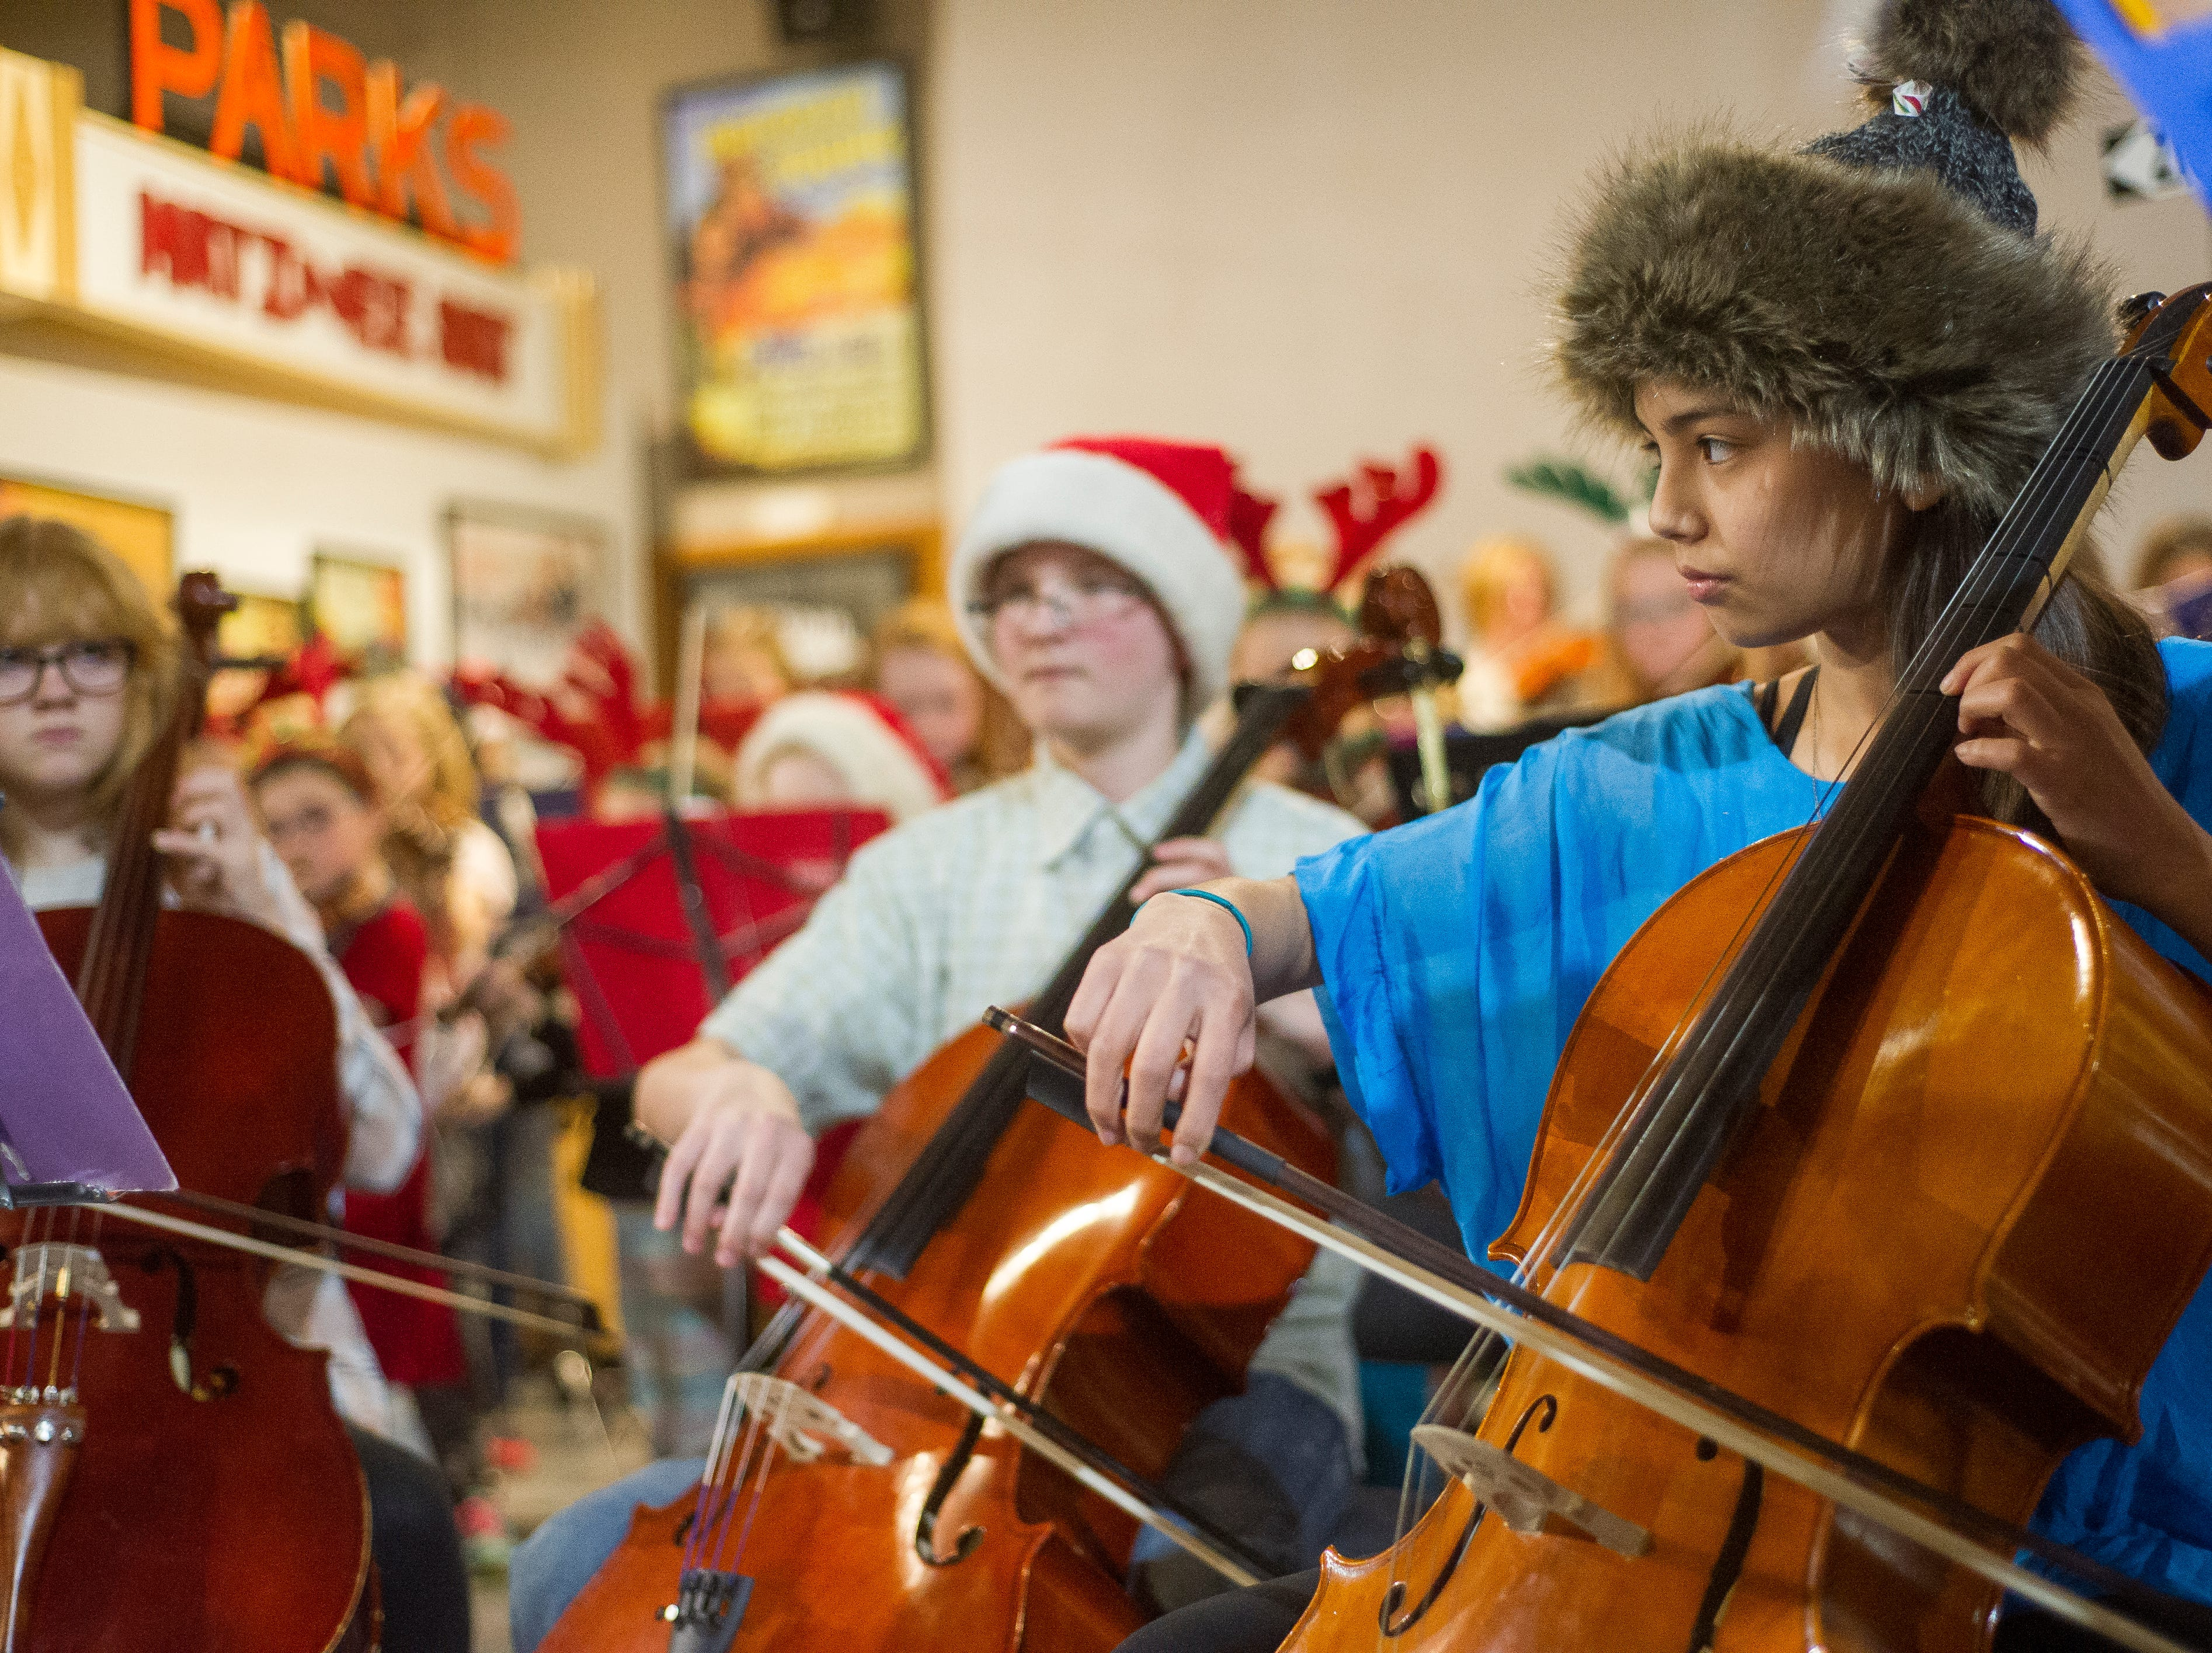 Members of the Suzuki Strings Cedar City perform holiday music during Christmas at the Homestead in Frontier Homestead State Park on Wednesday, December 5, 2018. The event included live music, crafts, and a visit with Santa Claus.